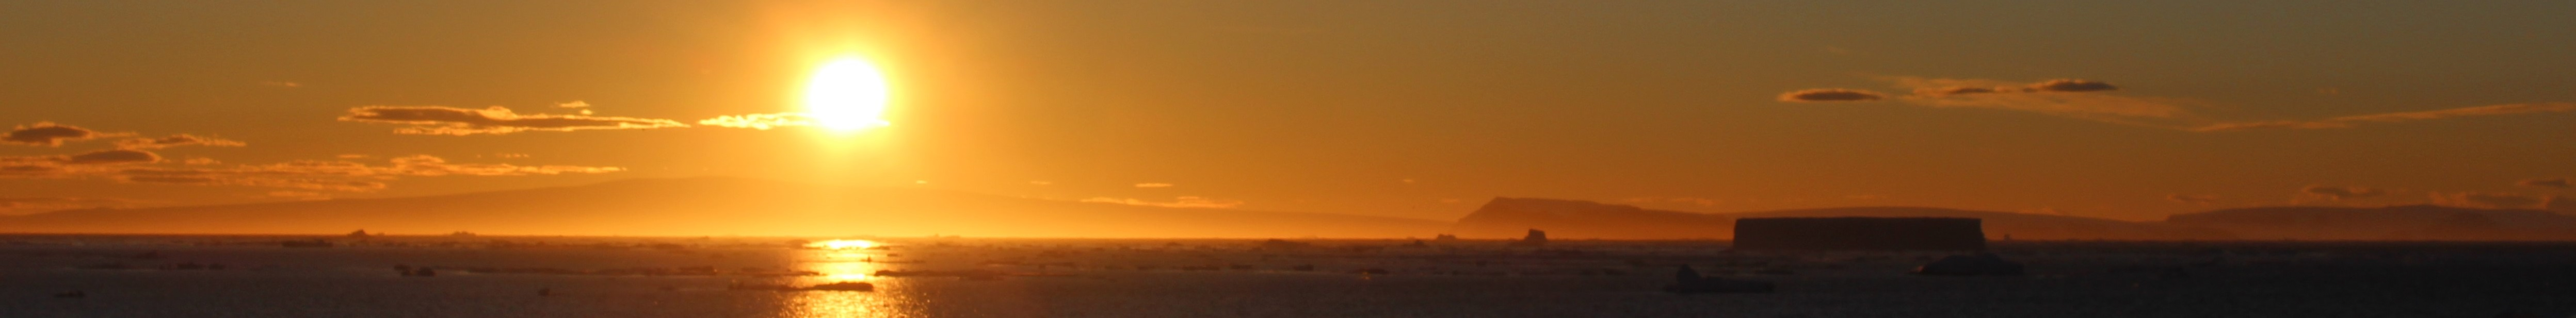 Sunset and icebergs in the Weddell Sea. The Small Cruise Ship Collection